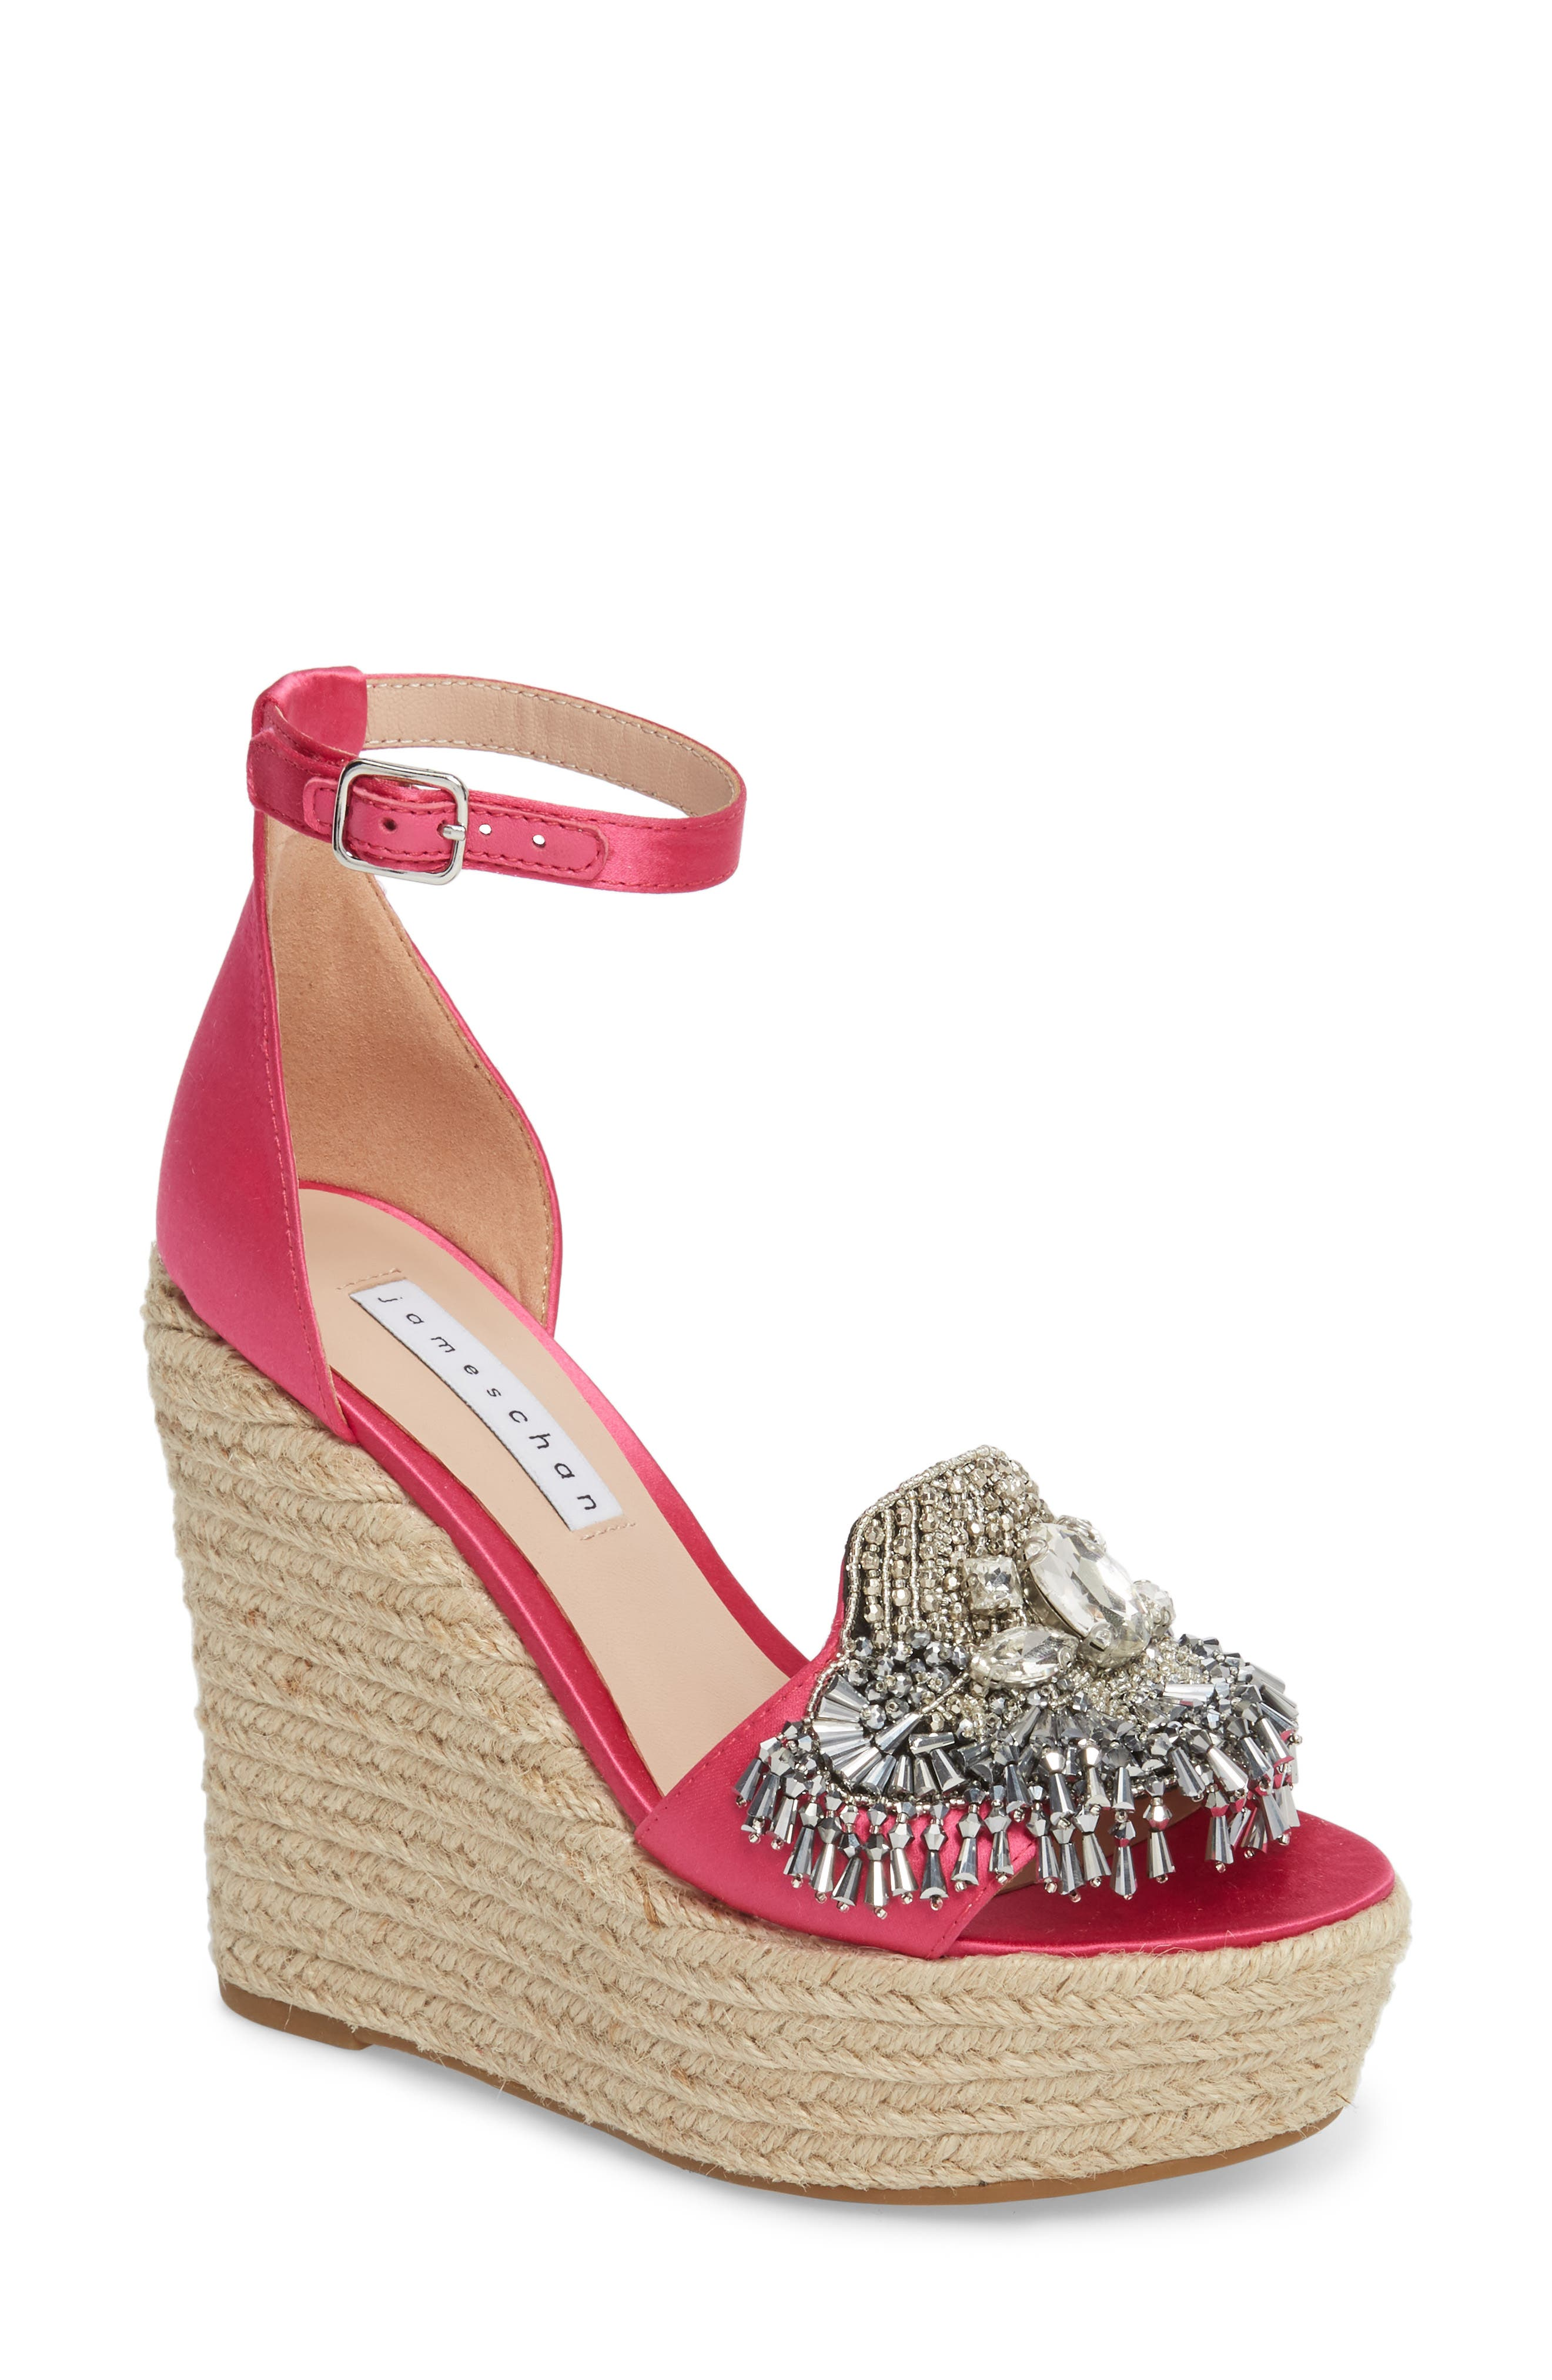 Maxim Platform Wedge Sandal,                             Main thumbnail 1, color,                             Posey Satin